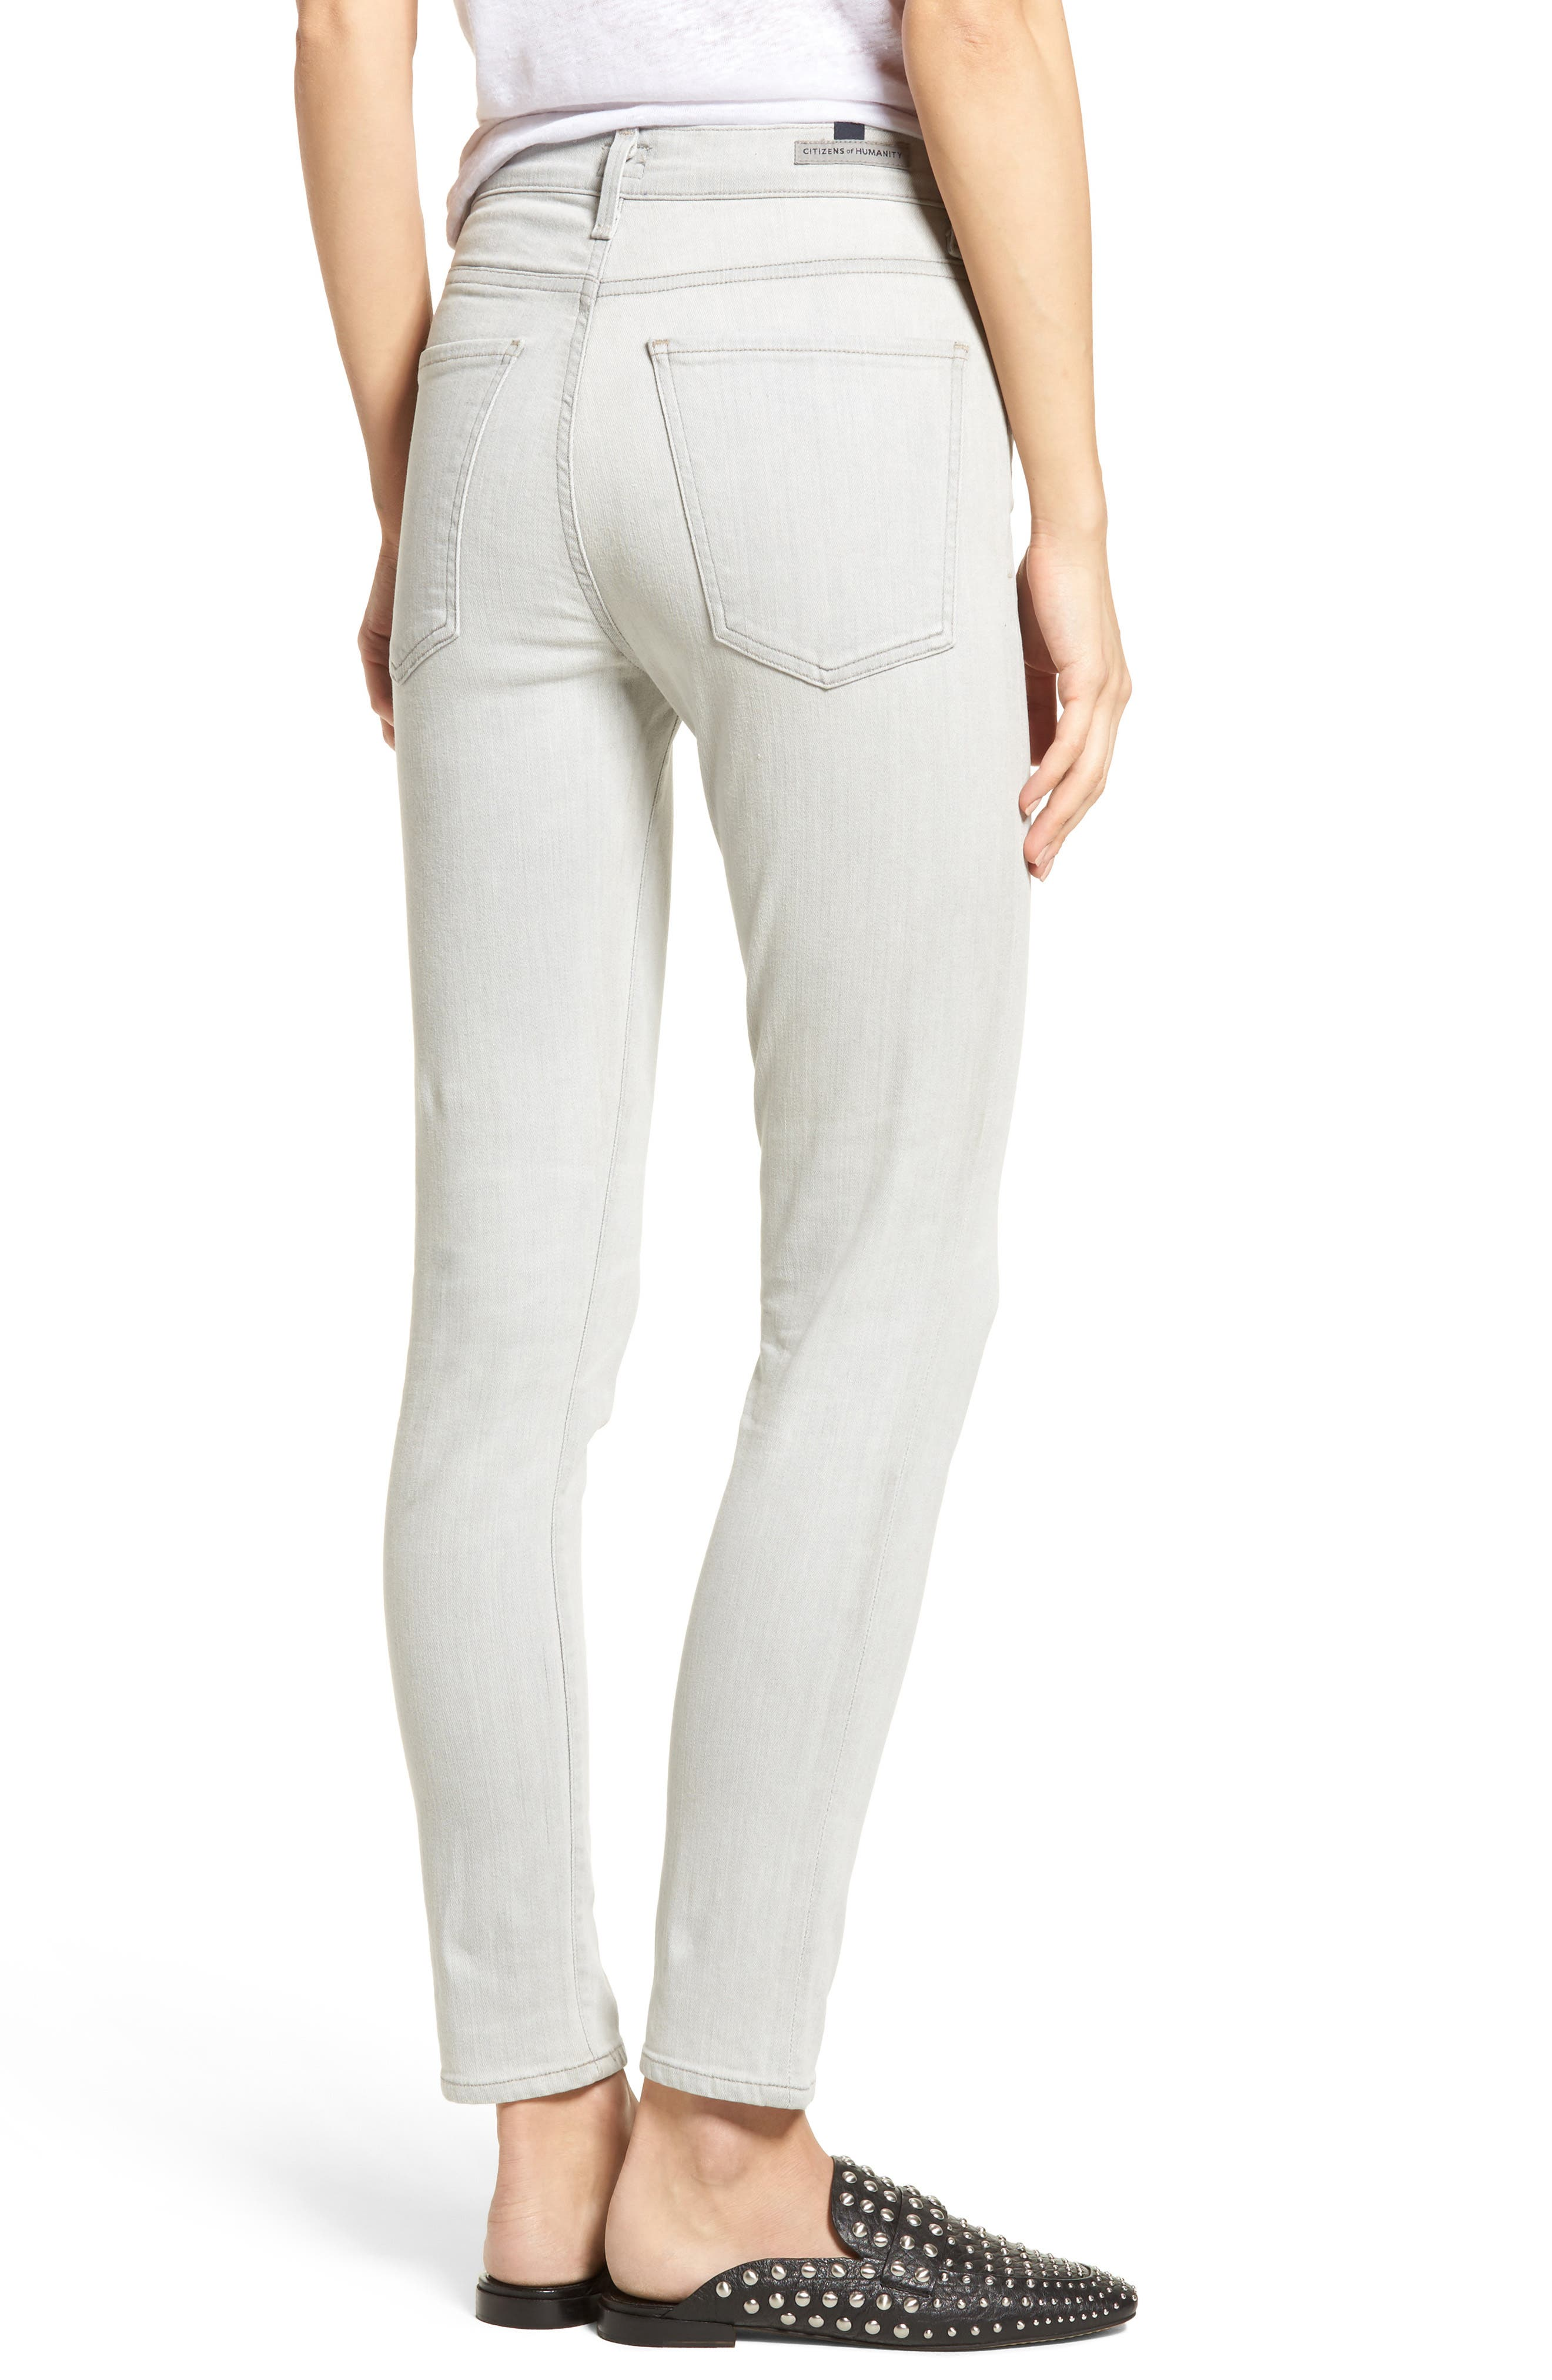 Carlie High Waist Ankle Skinny Jeans,                             Alternate thumbnail 2, color,                             055